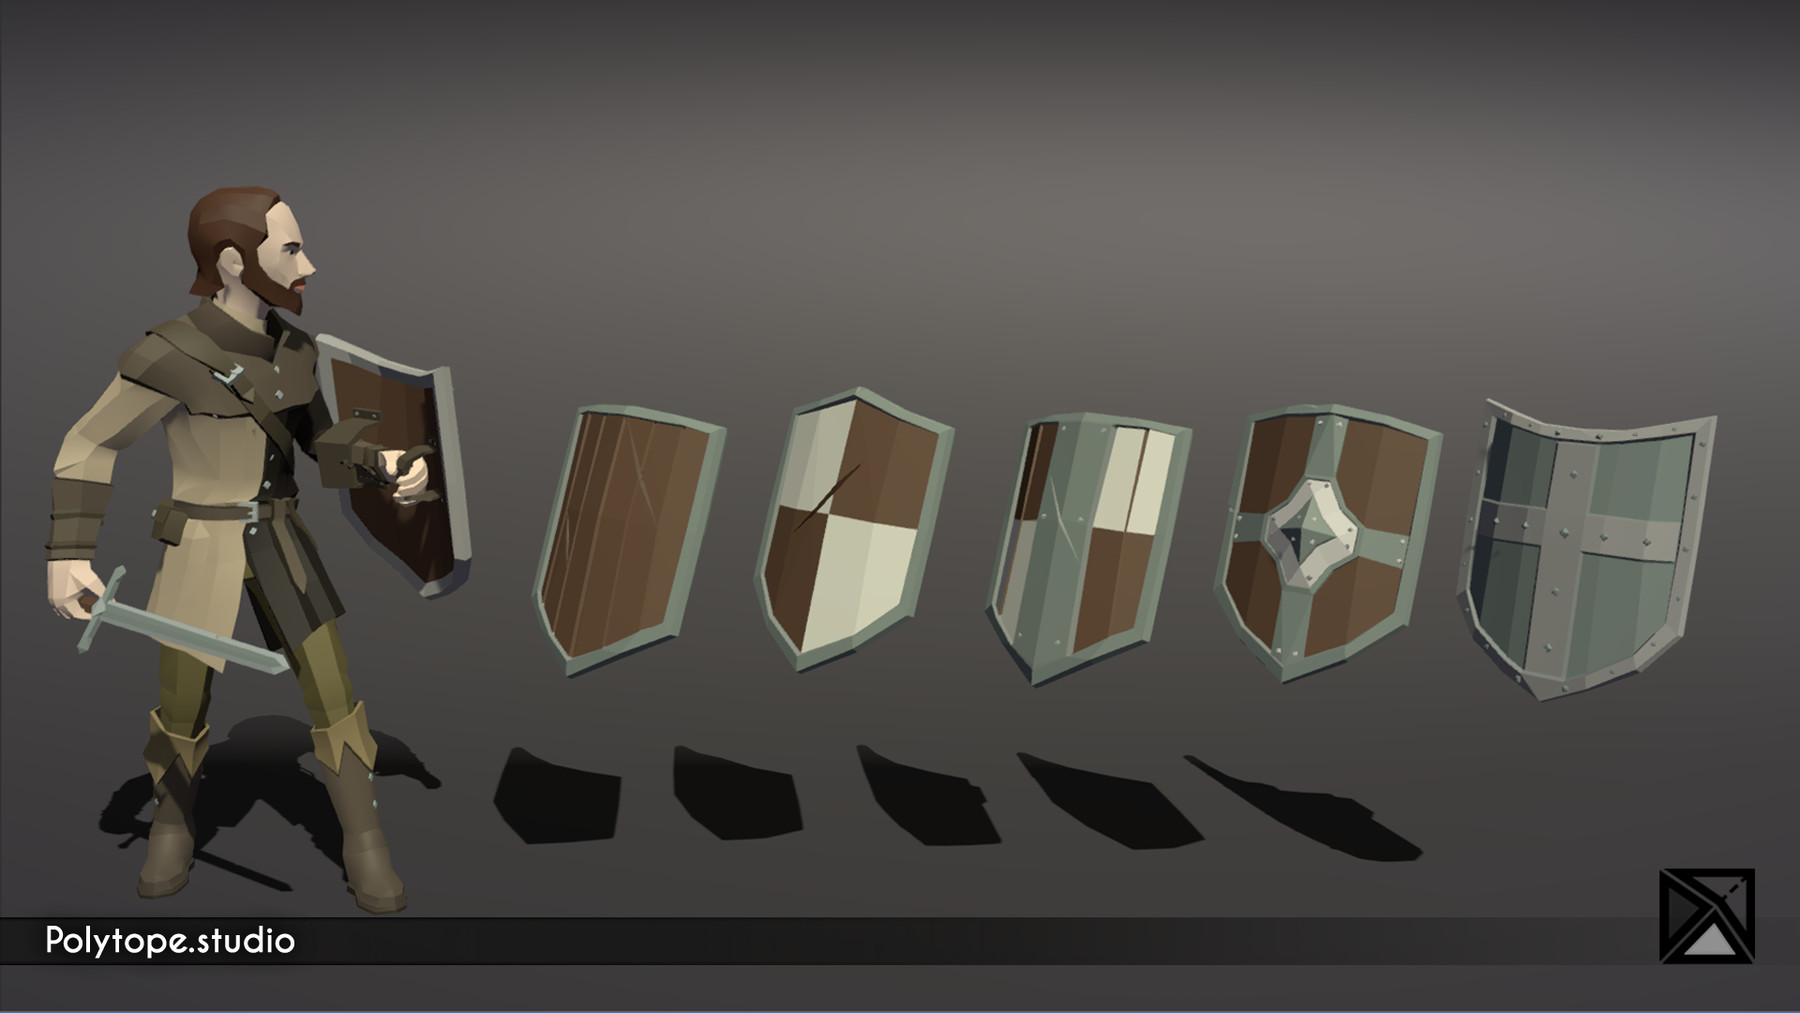 Pt medieval lowpoly weapons shield heater